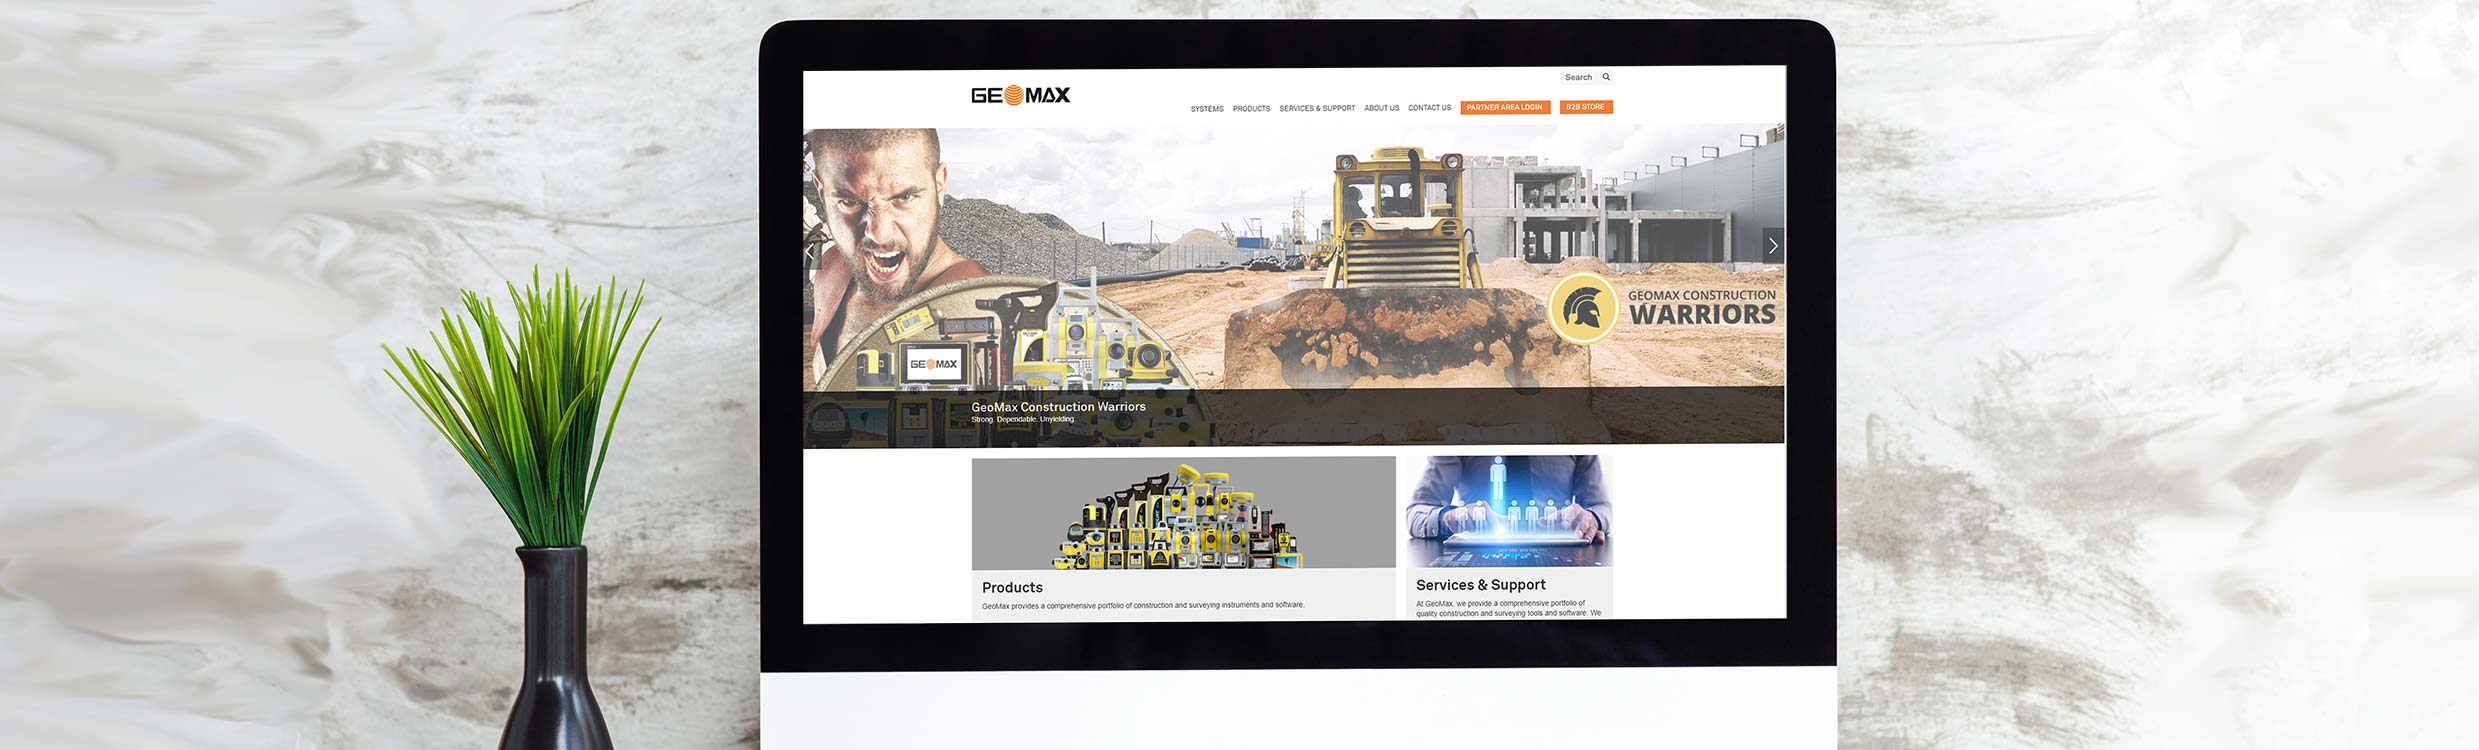 GeoMax new website